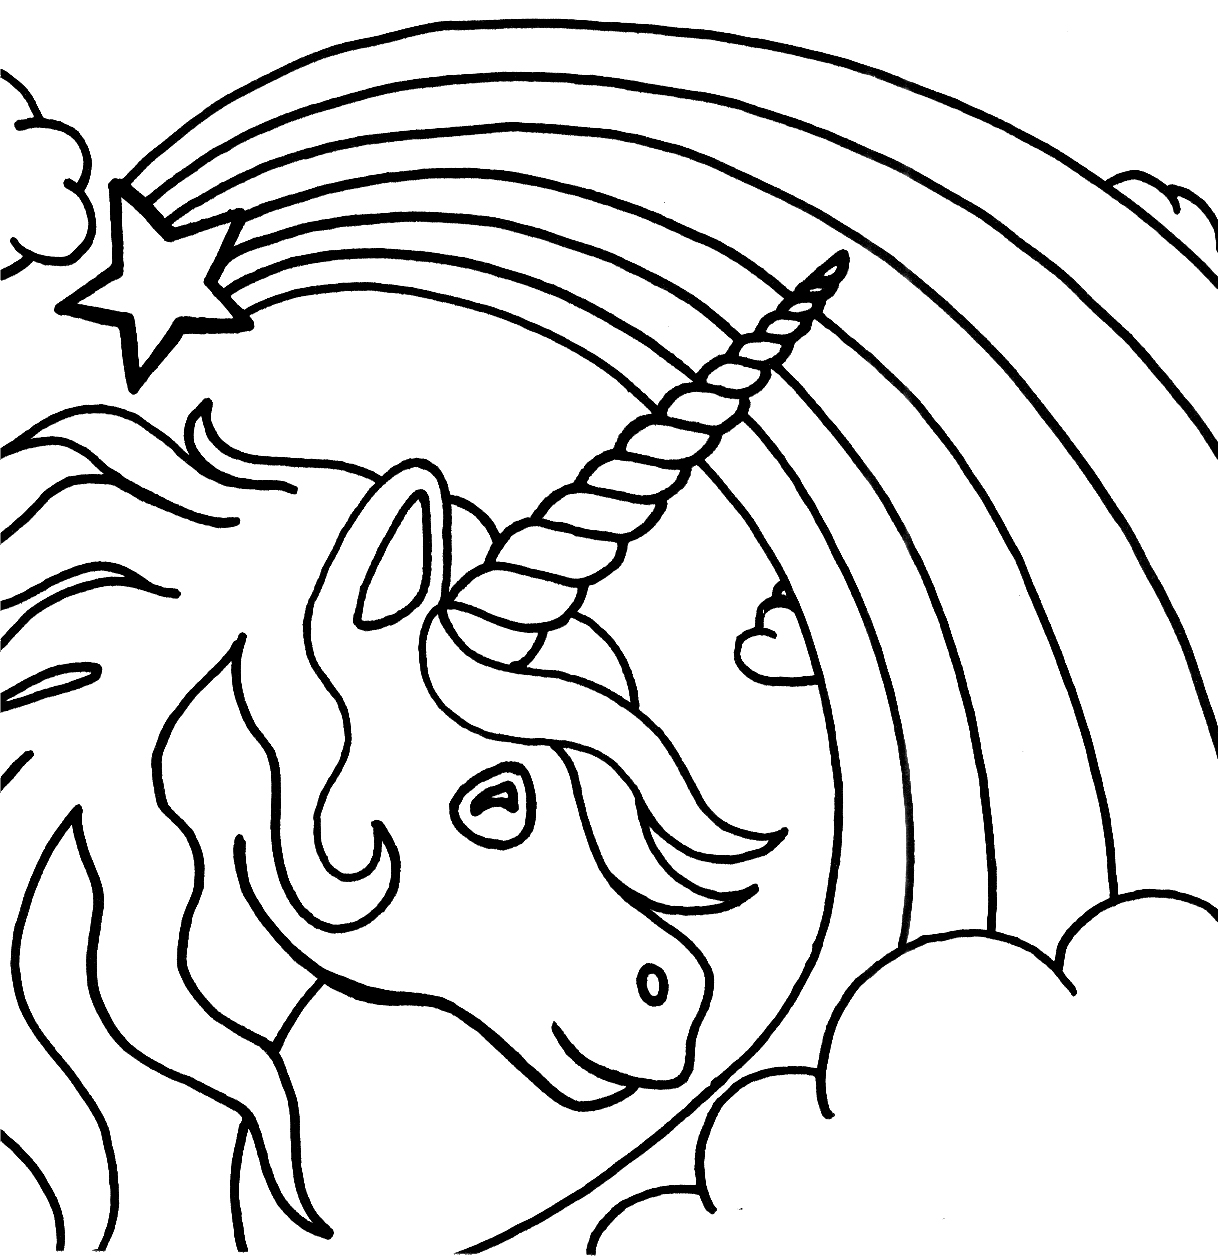 Coloring Pages For Kids Mesmerizing Free Printable Unicorn Coloring Pages For Kids Review